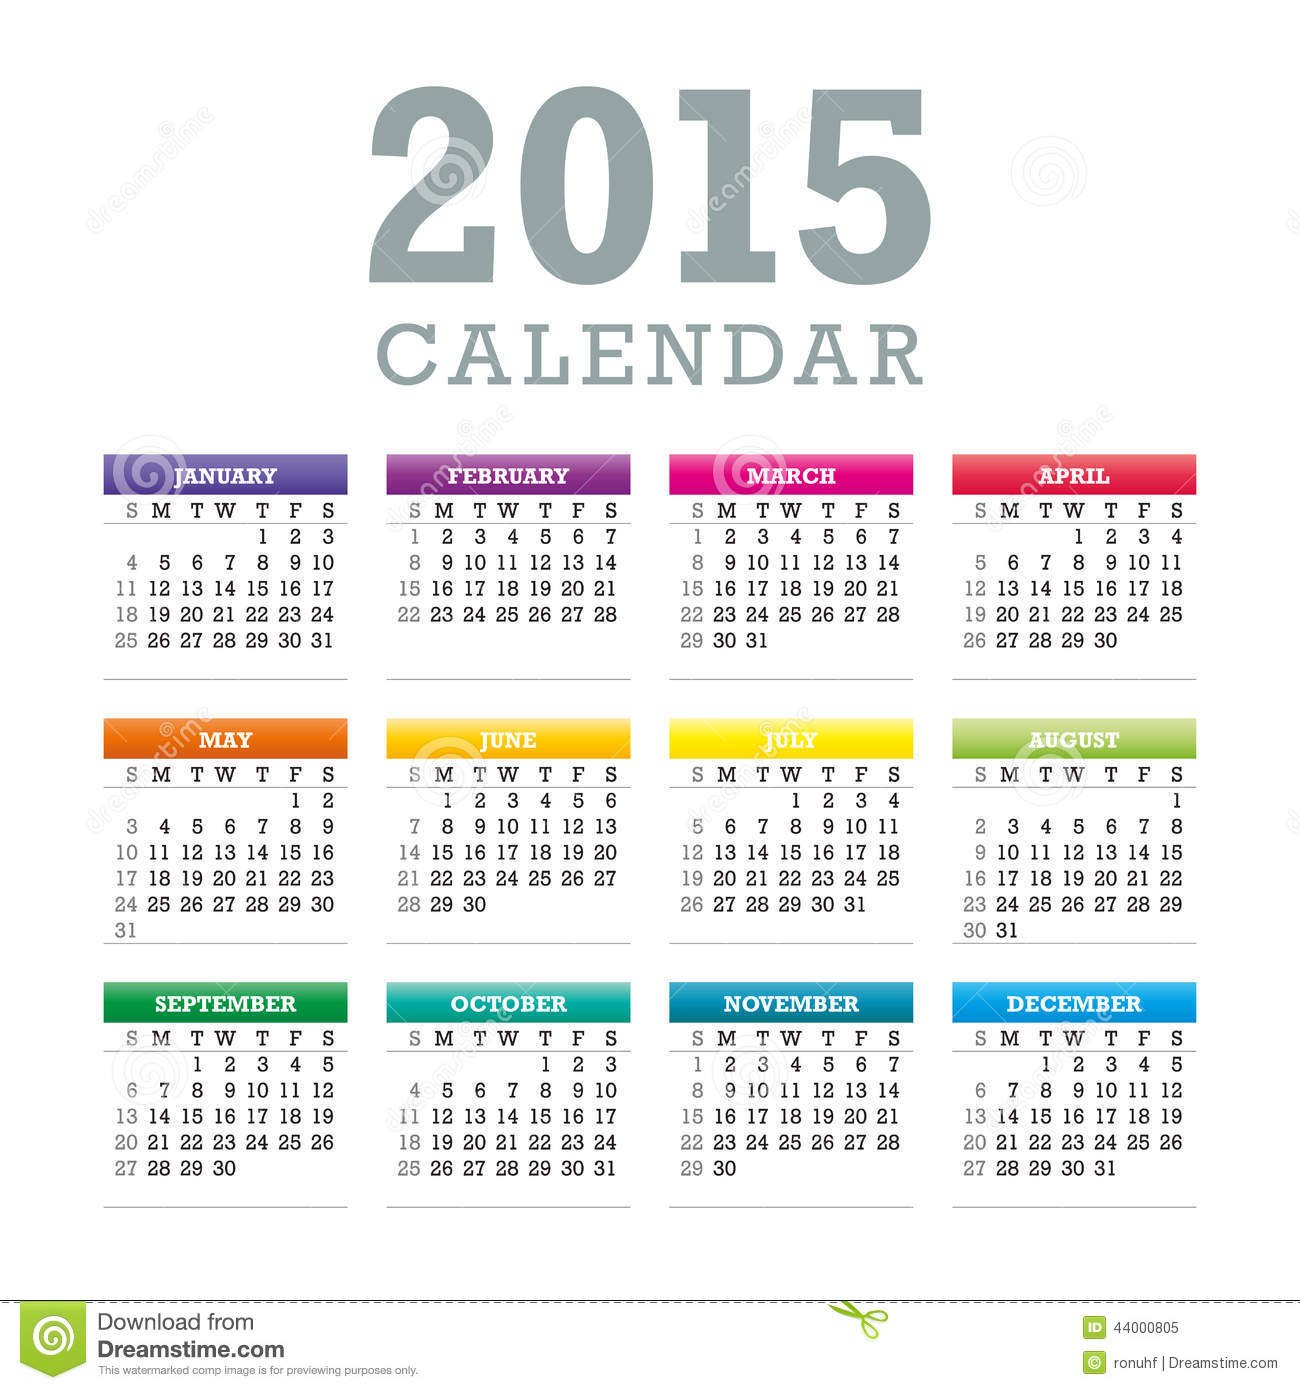 Weekly Calendar Vector : Colorful calendar vector stock illustration